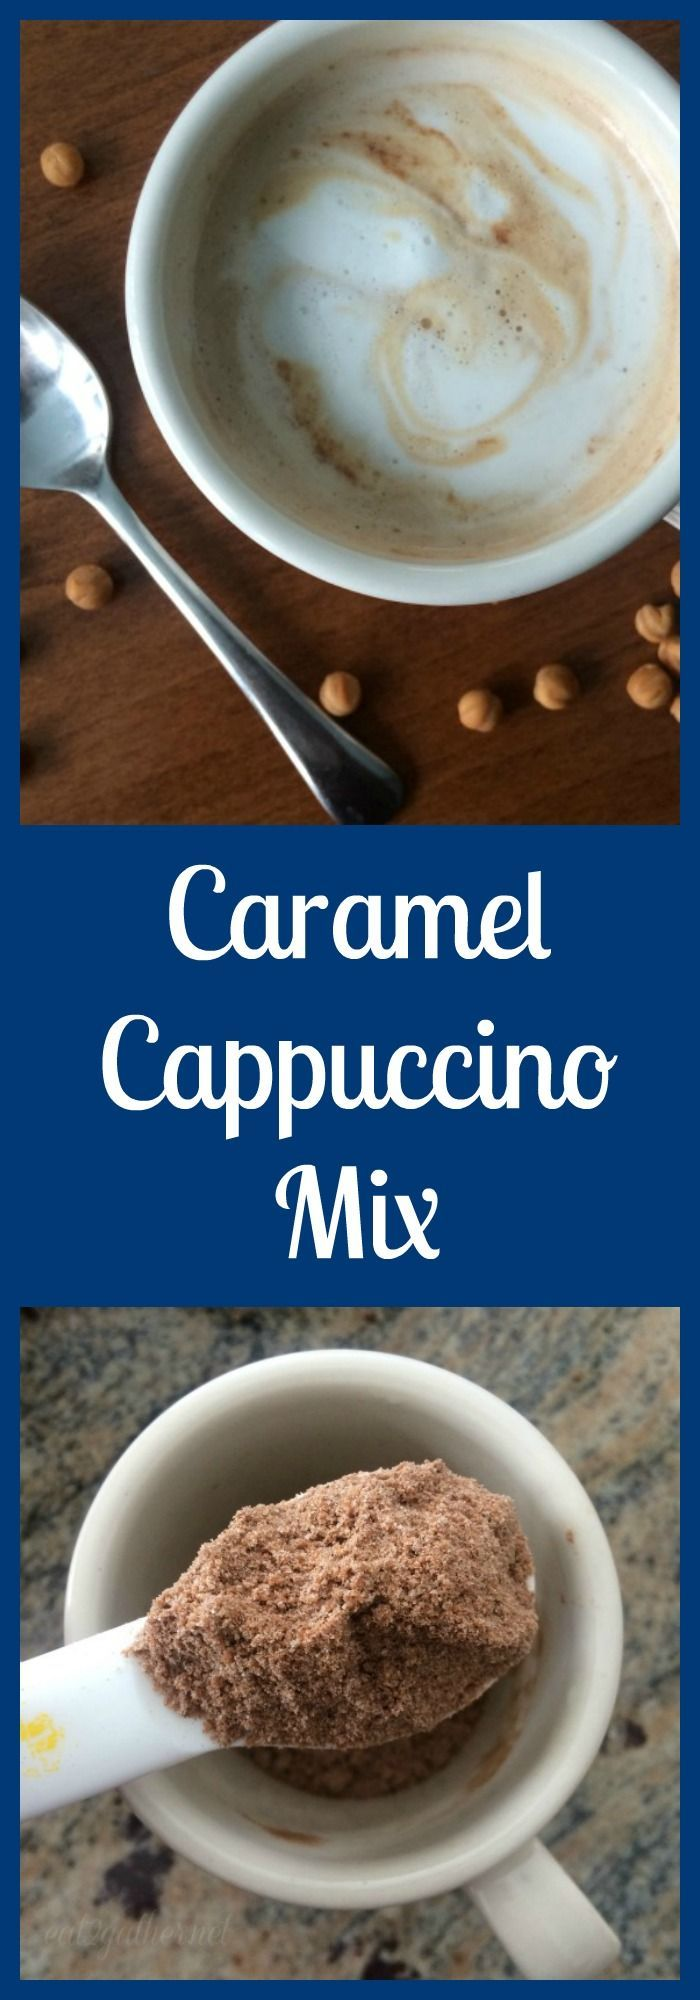 During the winter months there is nothing better than a hot steamy cup of Caramel Cappuccino.  Use this easy to make dry cappuccino mix and you will be able to make one in no time! Just add hot water! From /eat2gather/